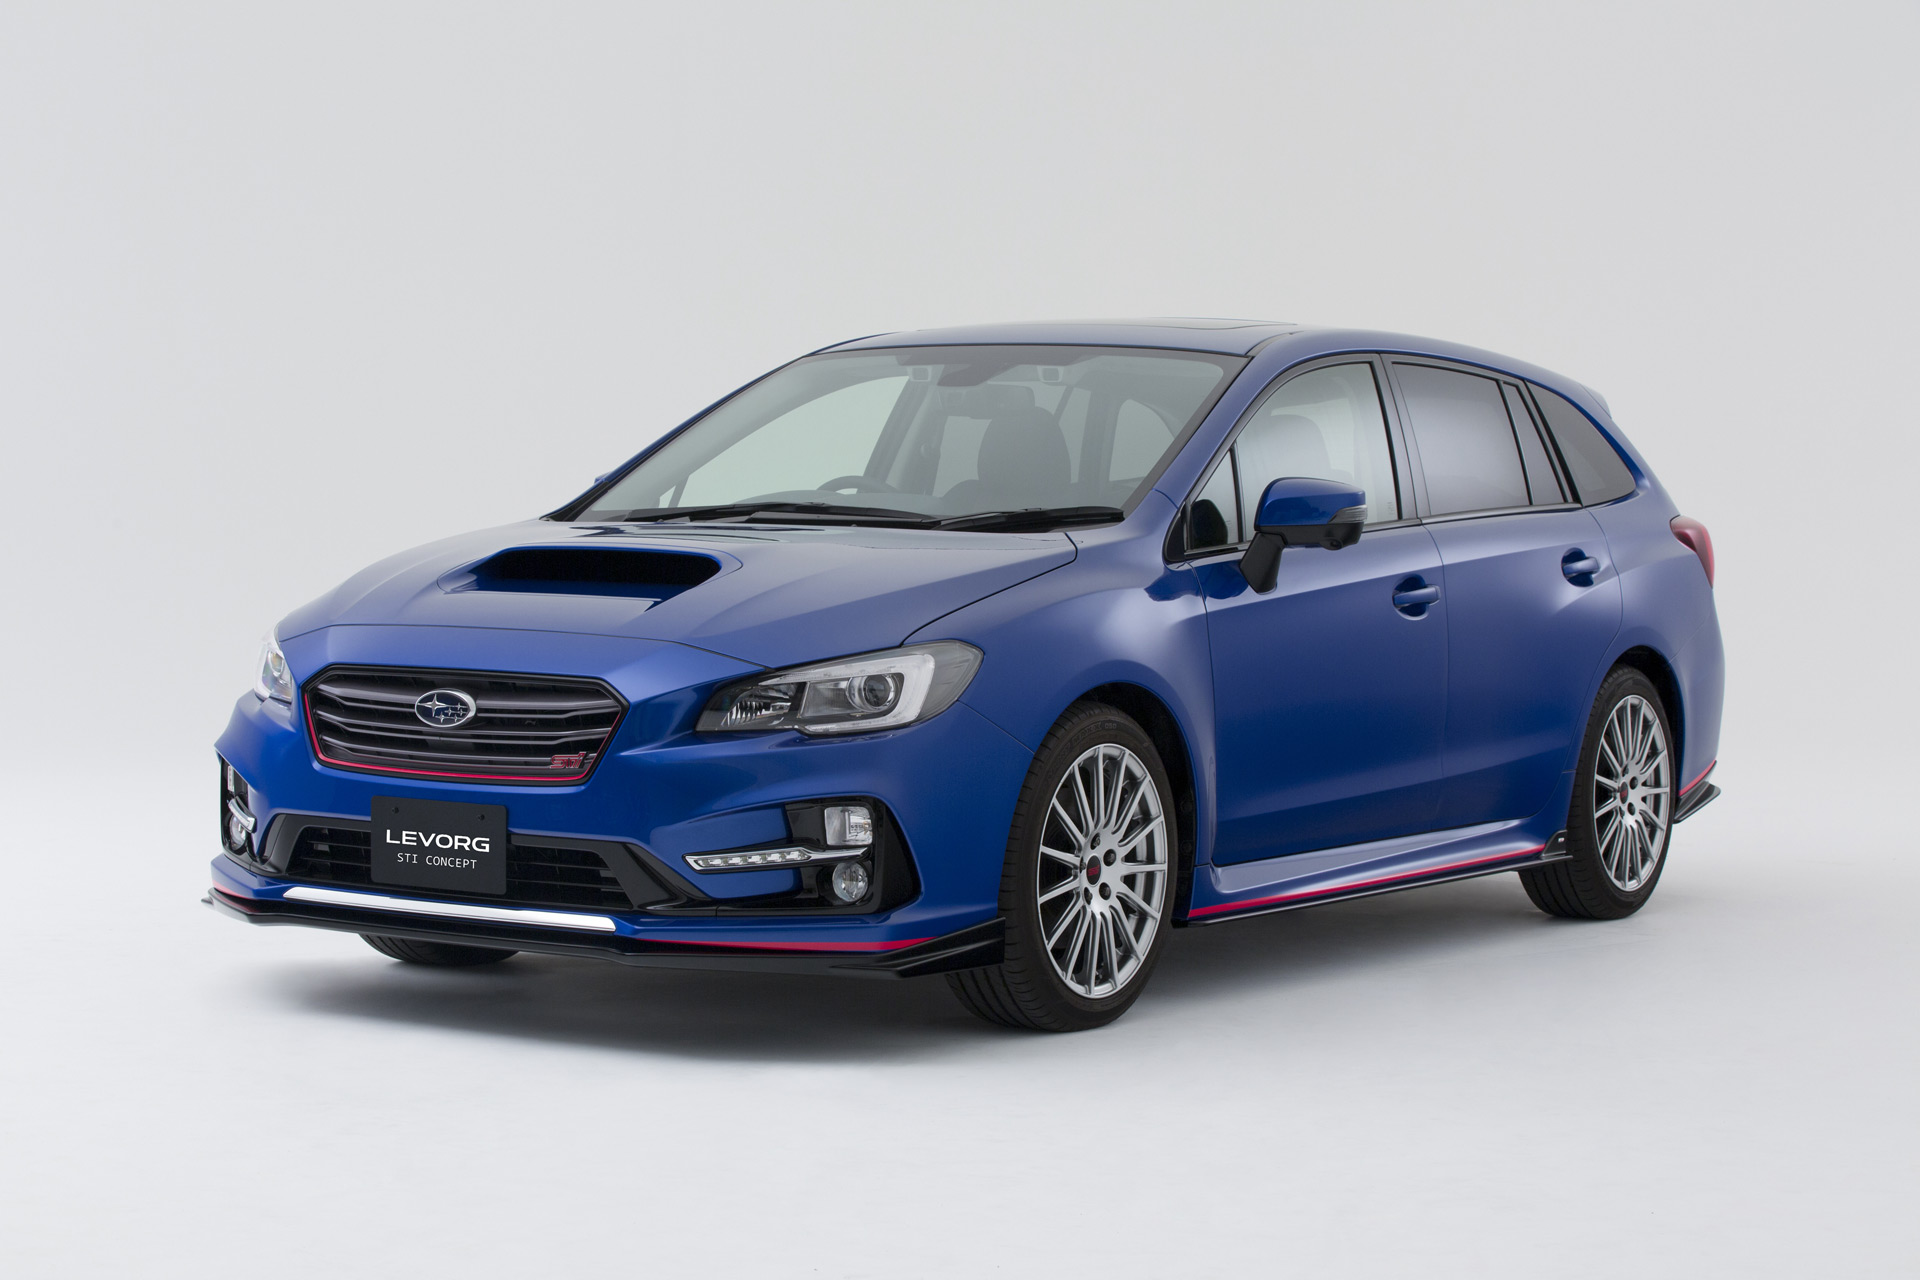 Porsche Electric 2019 >> Subaru Levorg STI confirmed